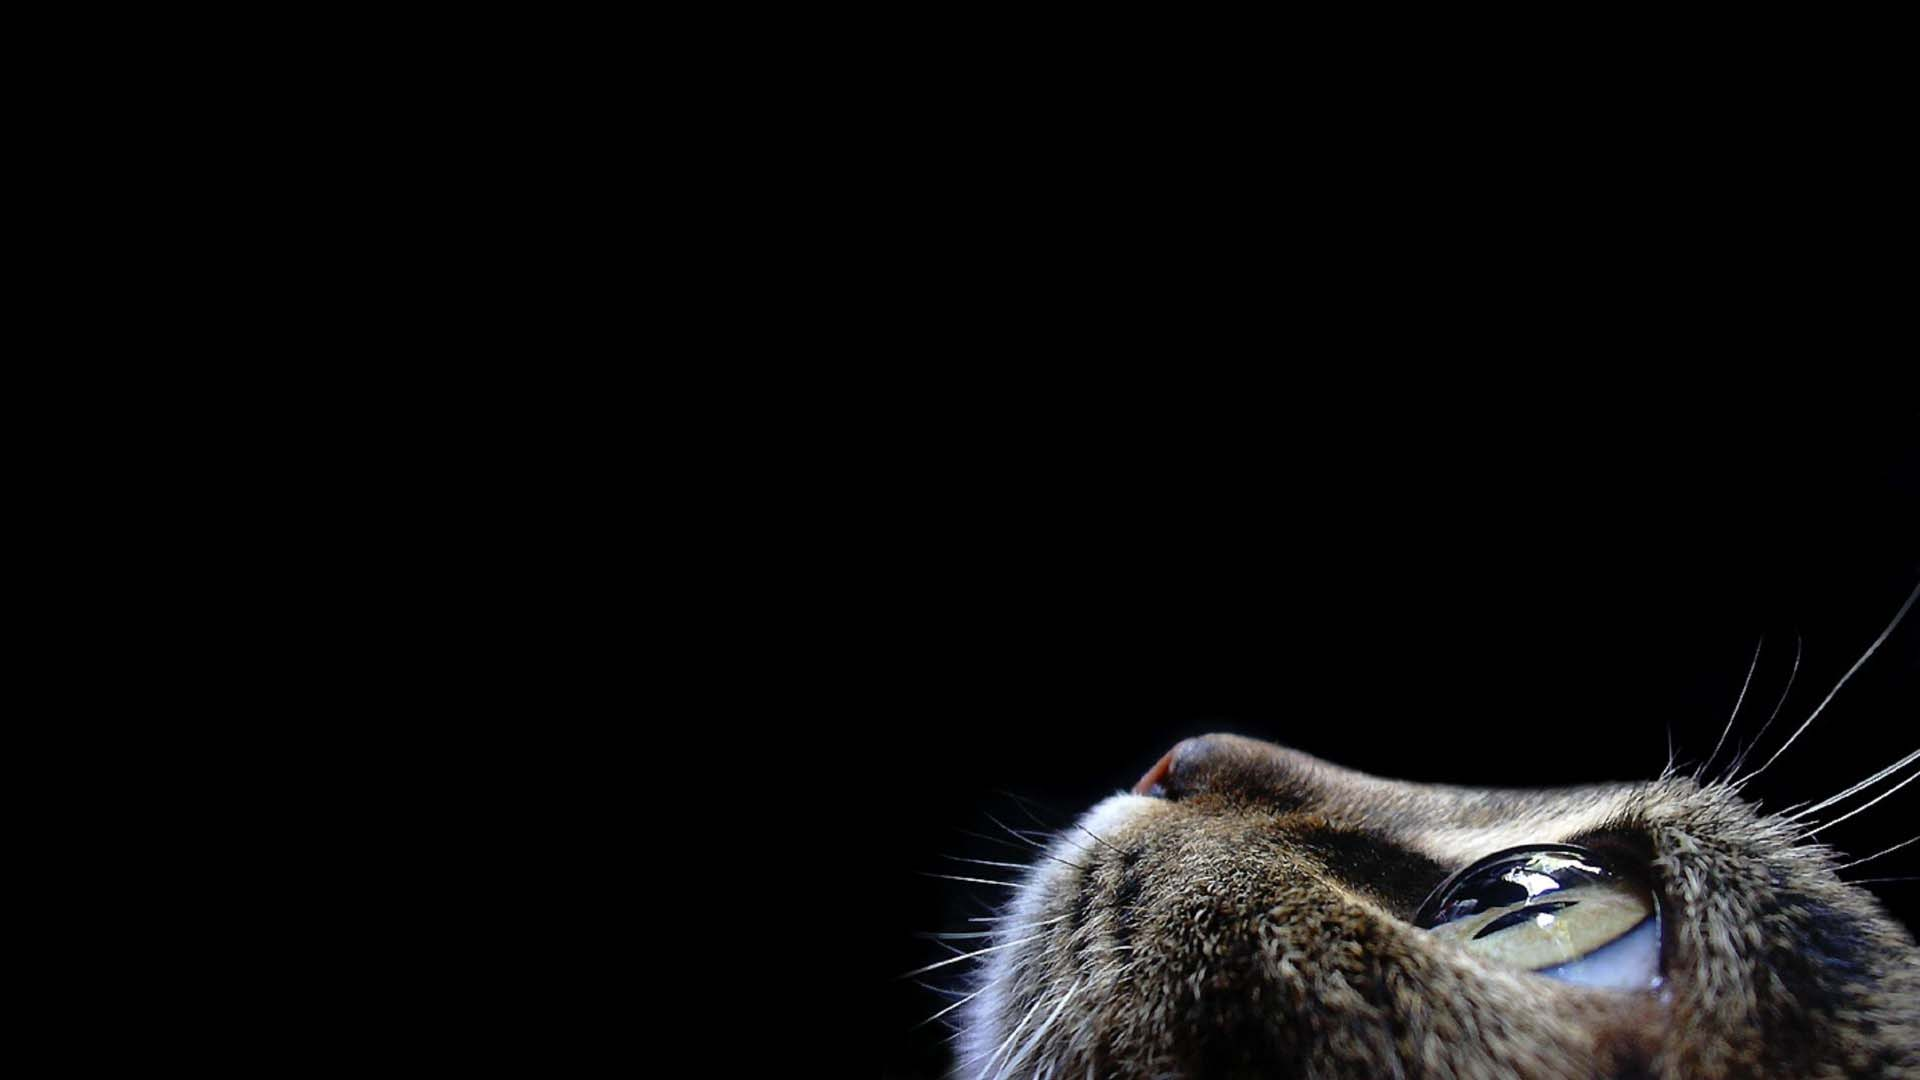 Most Amazing Cat Seen To The Top On A Black Background 4K Wallpaper